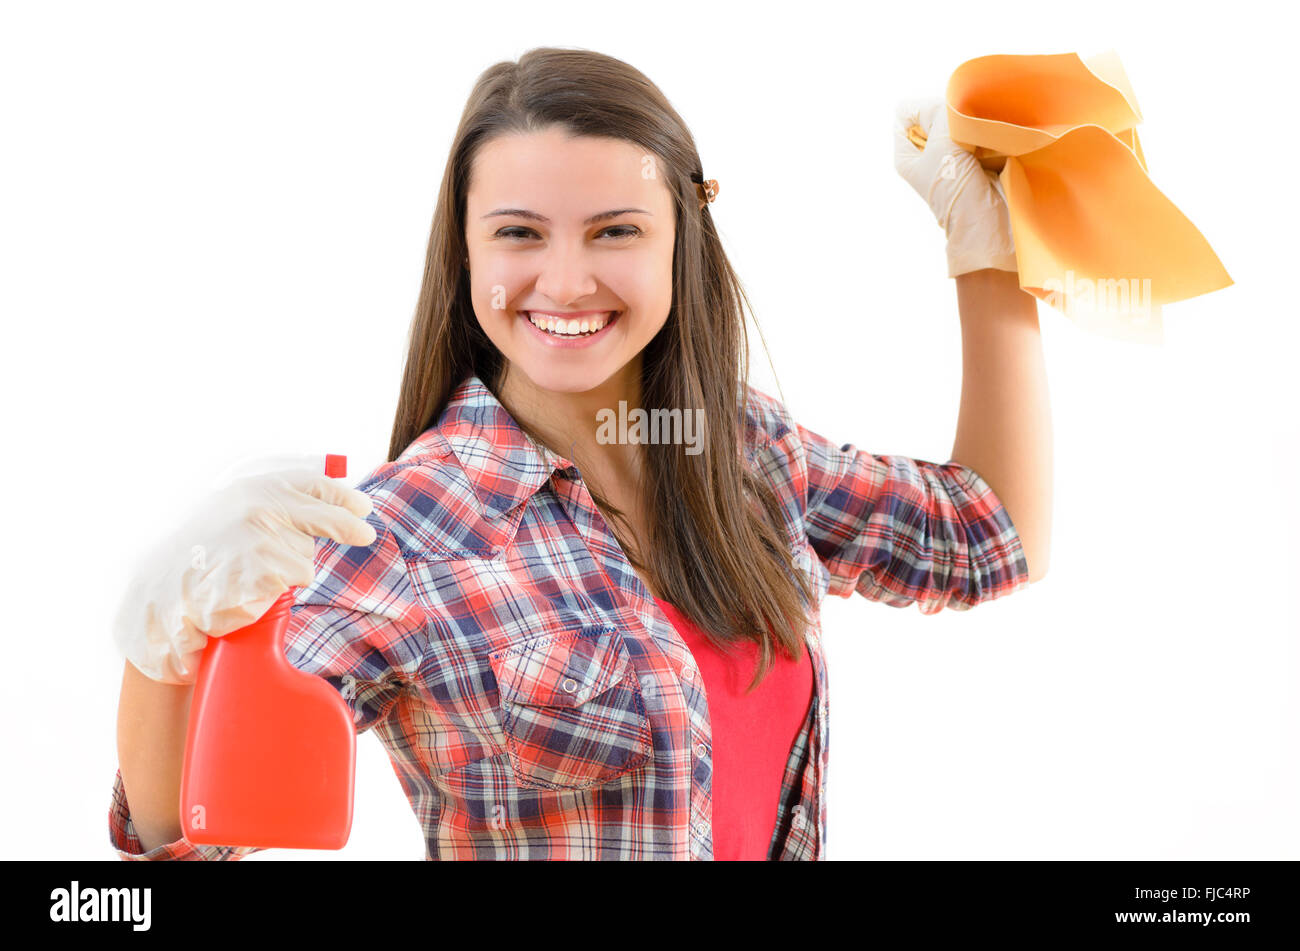 A smiling woman with a cleaning kit in her hands - Stock Image